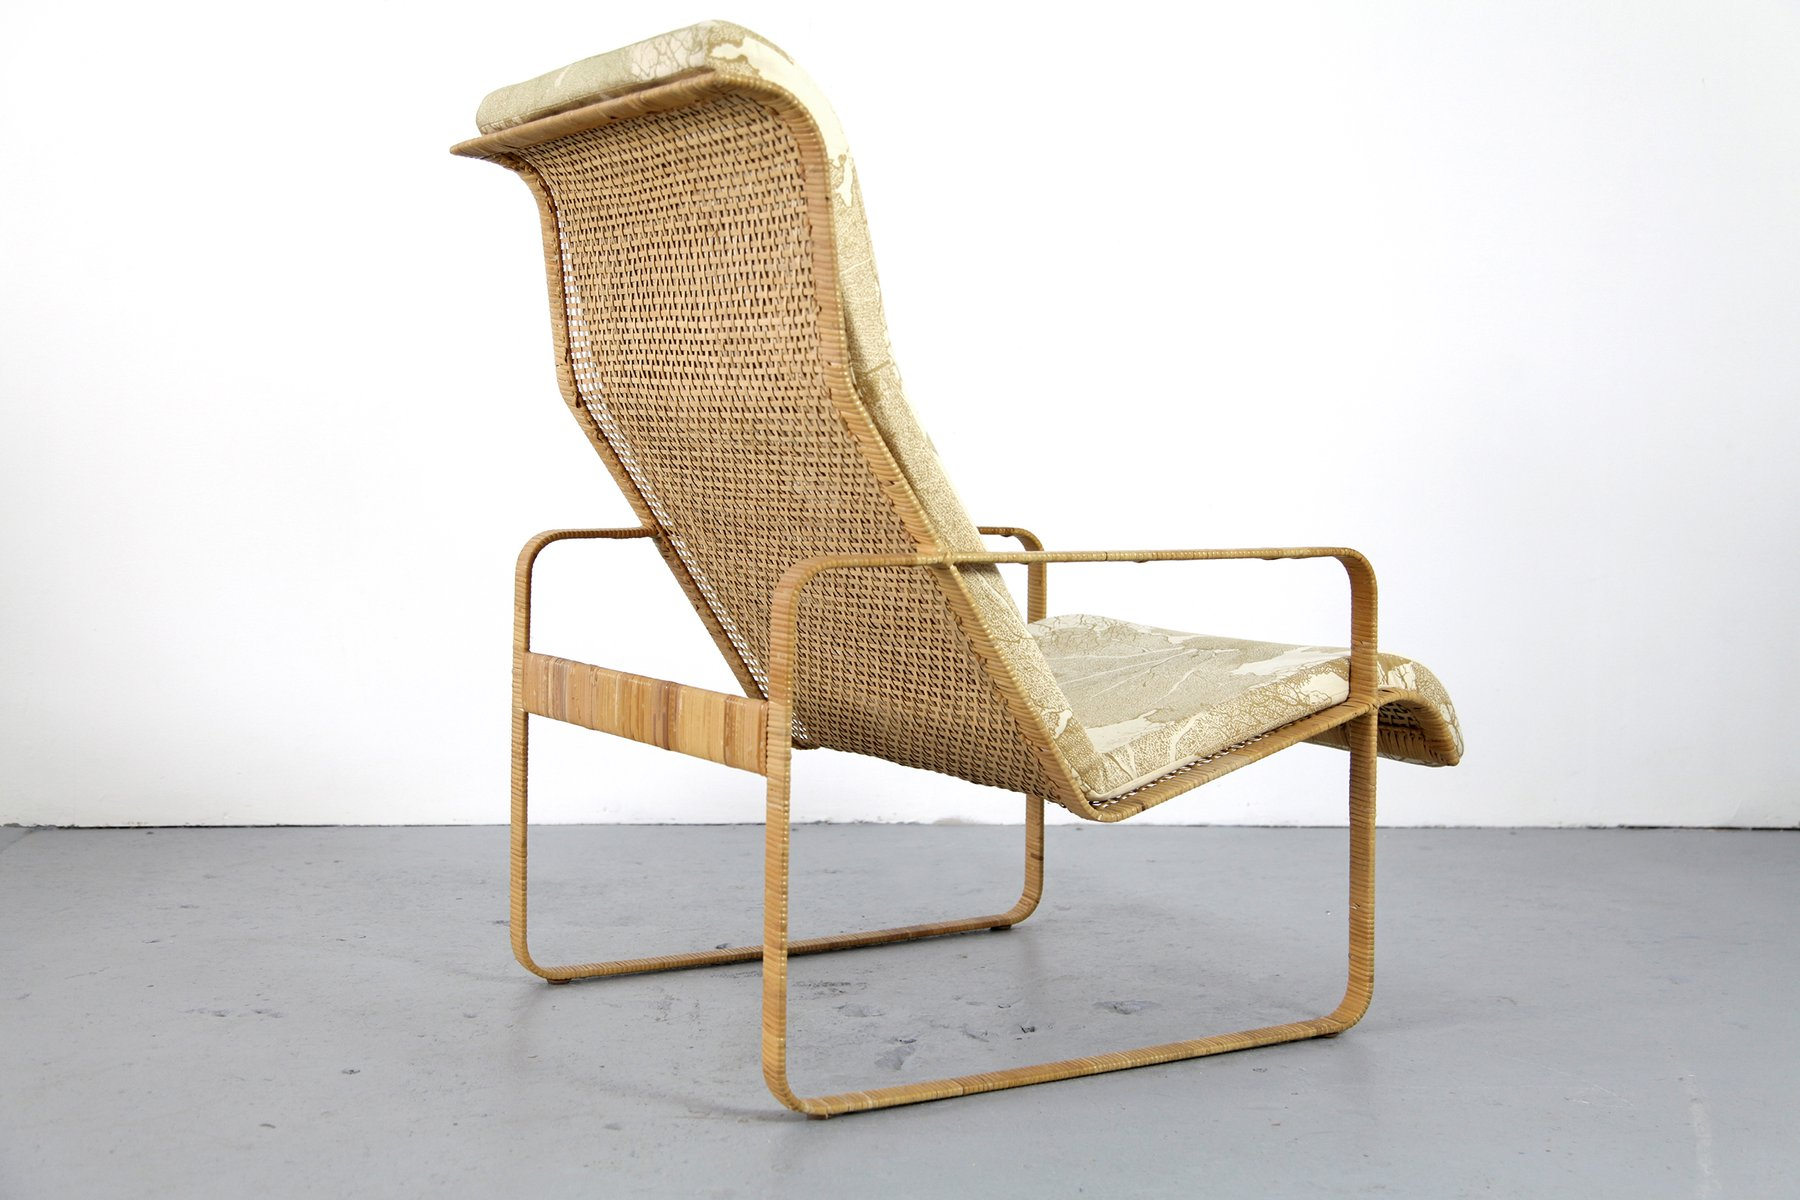 wicker lounge chair with ottoman from kill international 1970s for sale at pamono. Black Bedroom Furniture Sets. Home Design Ideas